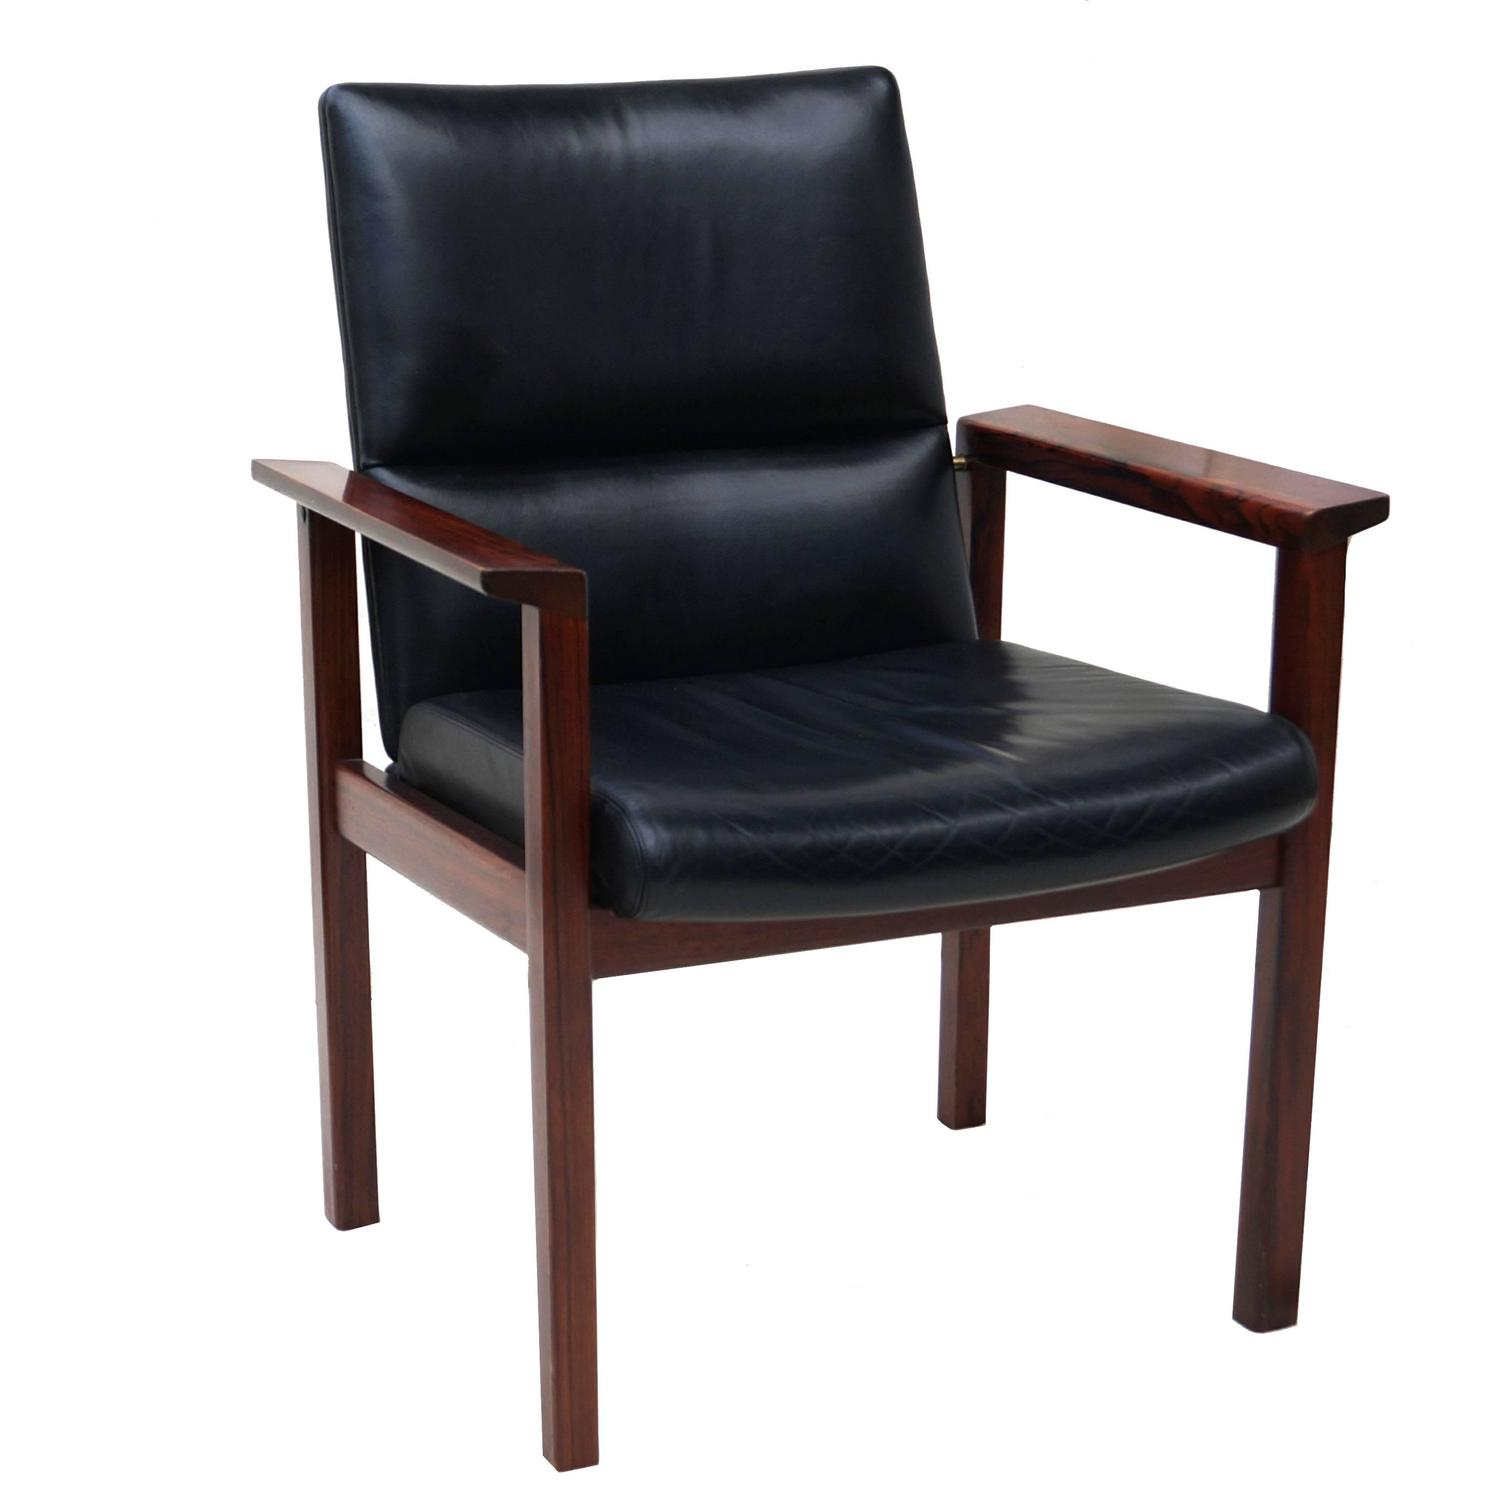 side chairs for office bedroom makeup chair mid century danish modern rosewood desk